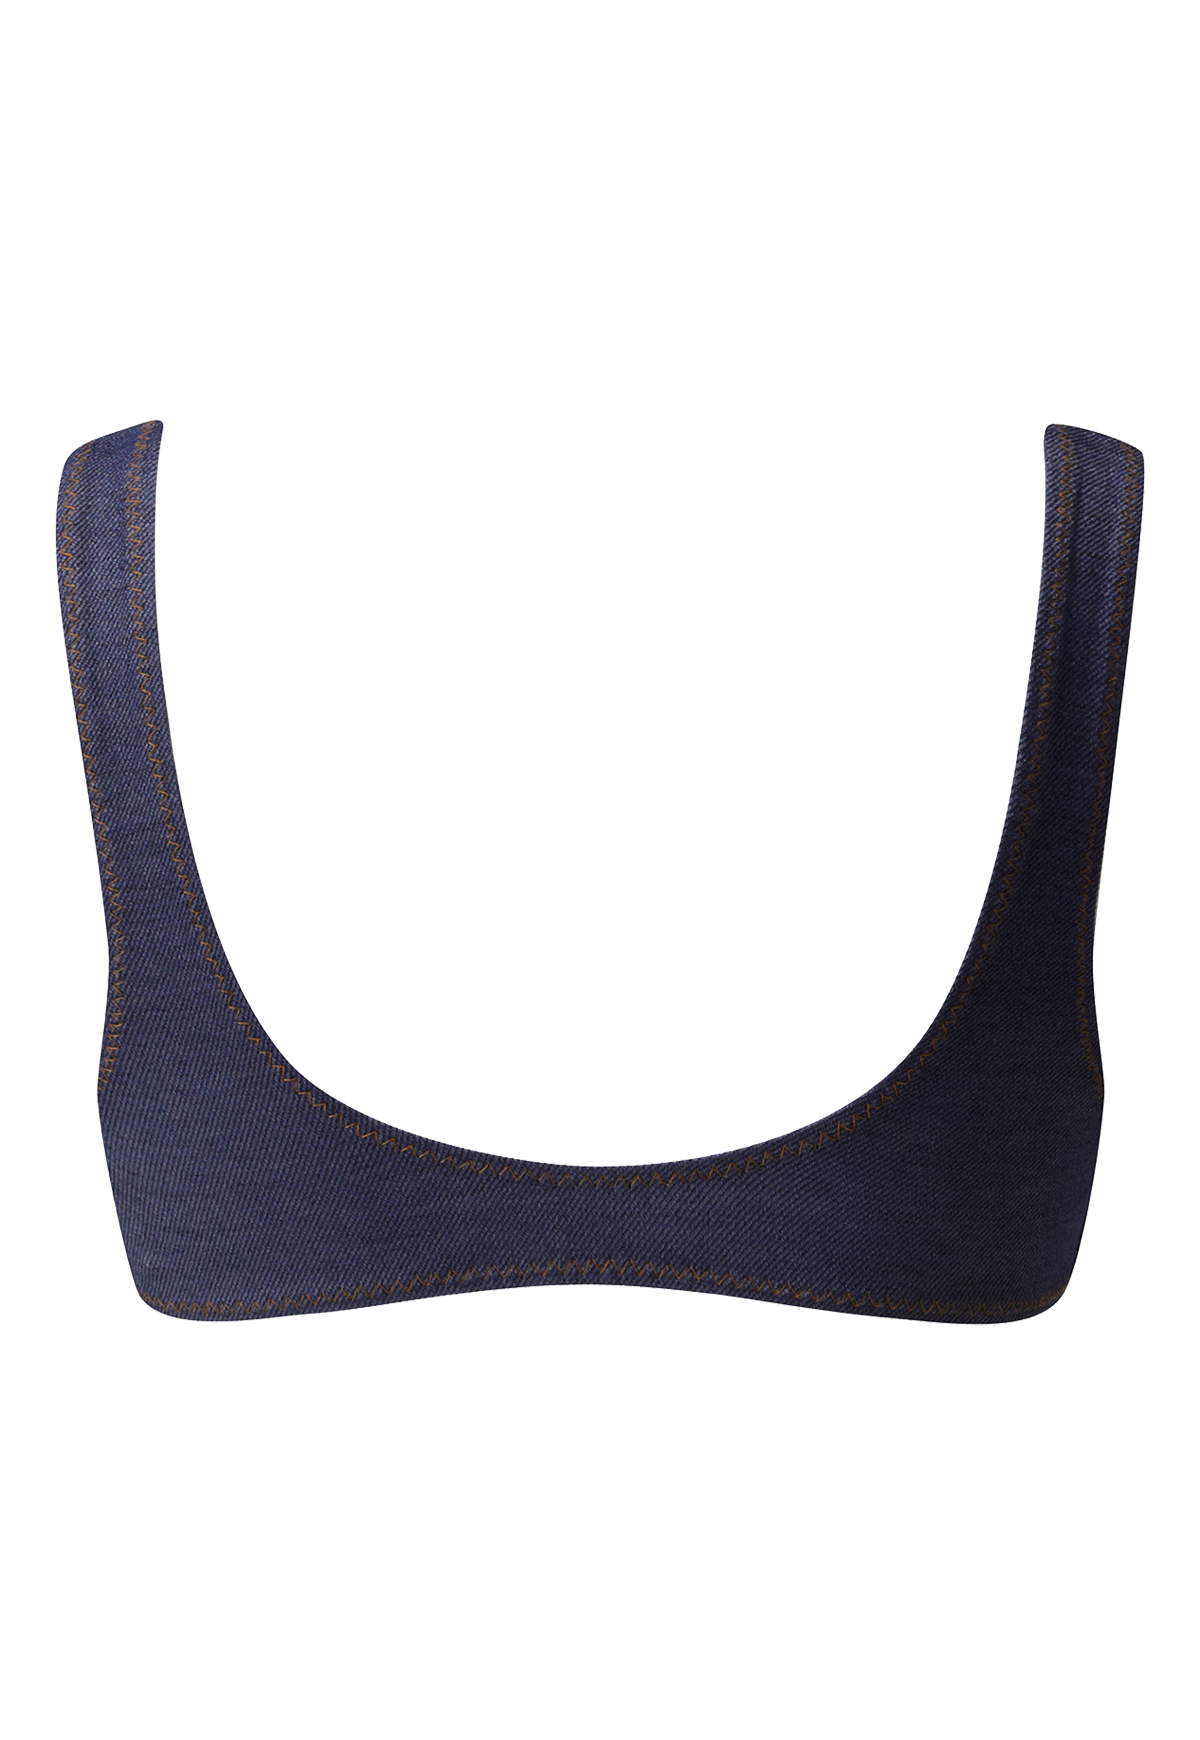 JASMINE INDIGO DENIM SPORT BRA TOP